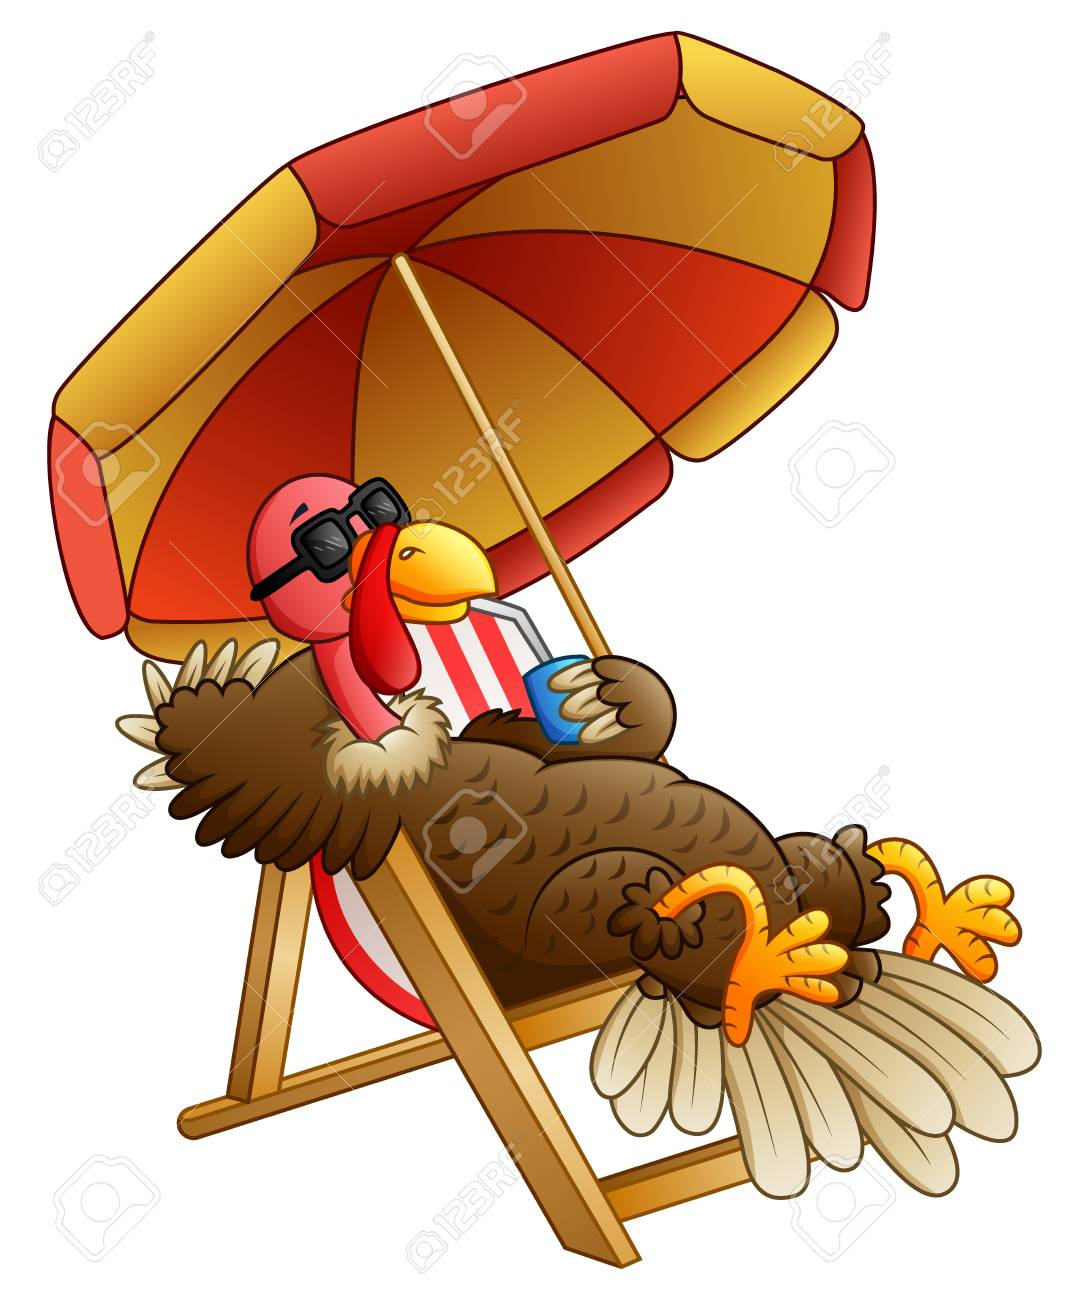 Cartoon turkey bird sitting on beach chair stock photo picture cartoon turkey bird sitting on beach chair stock photo 87301536 voltagebd Gallery